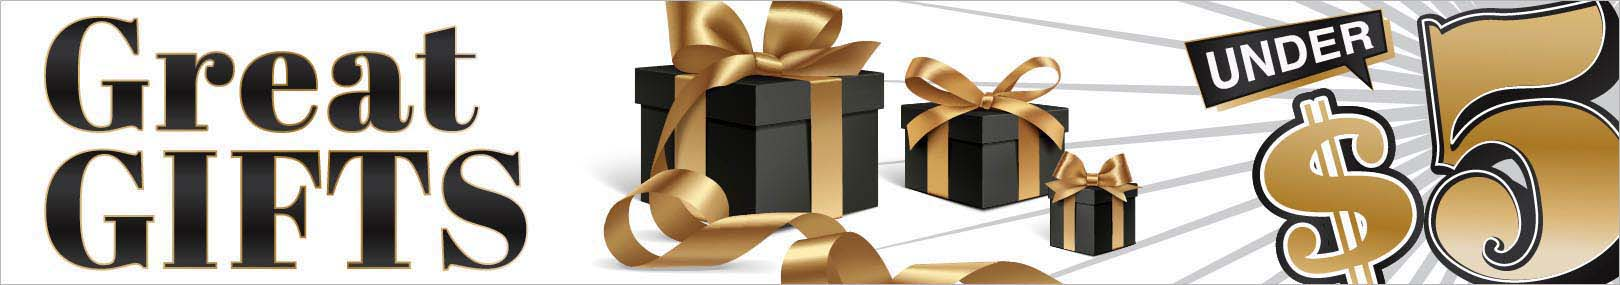 Employee Gifts Under 5 from Positive Promotions